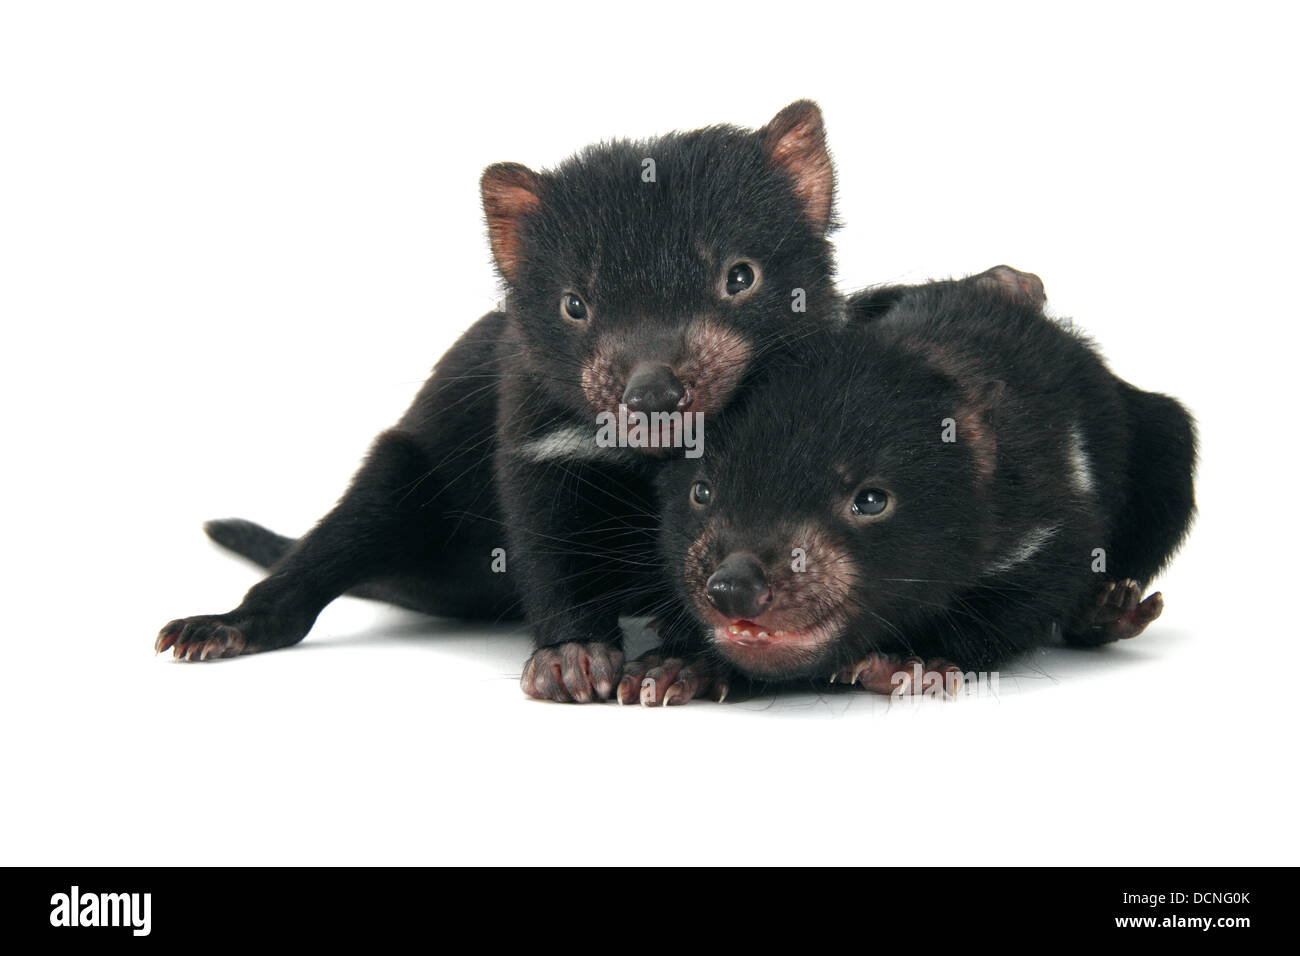 Tasmanian devil infants photographed on a white background, digitally adjusted ready for easy cut-out - Stock Image